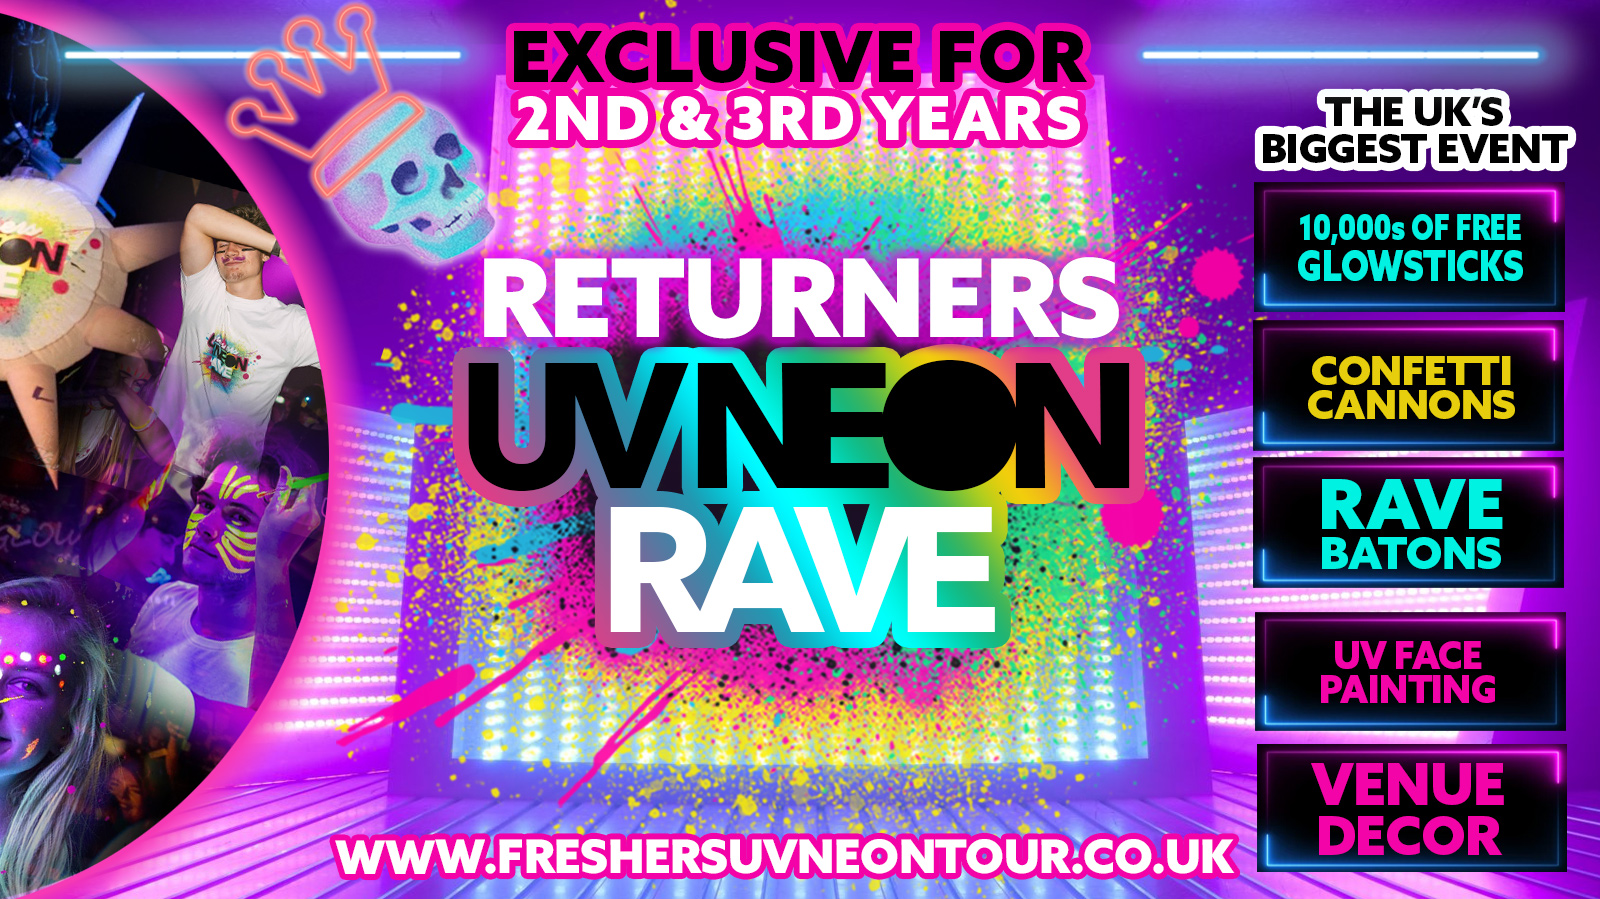 Newcastle Returners UV Neon Rave   Exclusive for 2nd & 3rd Years